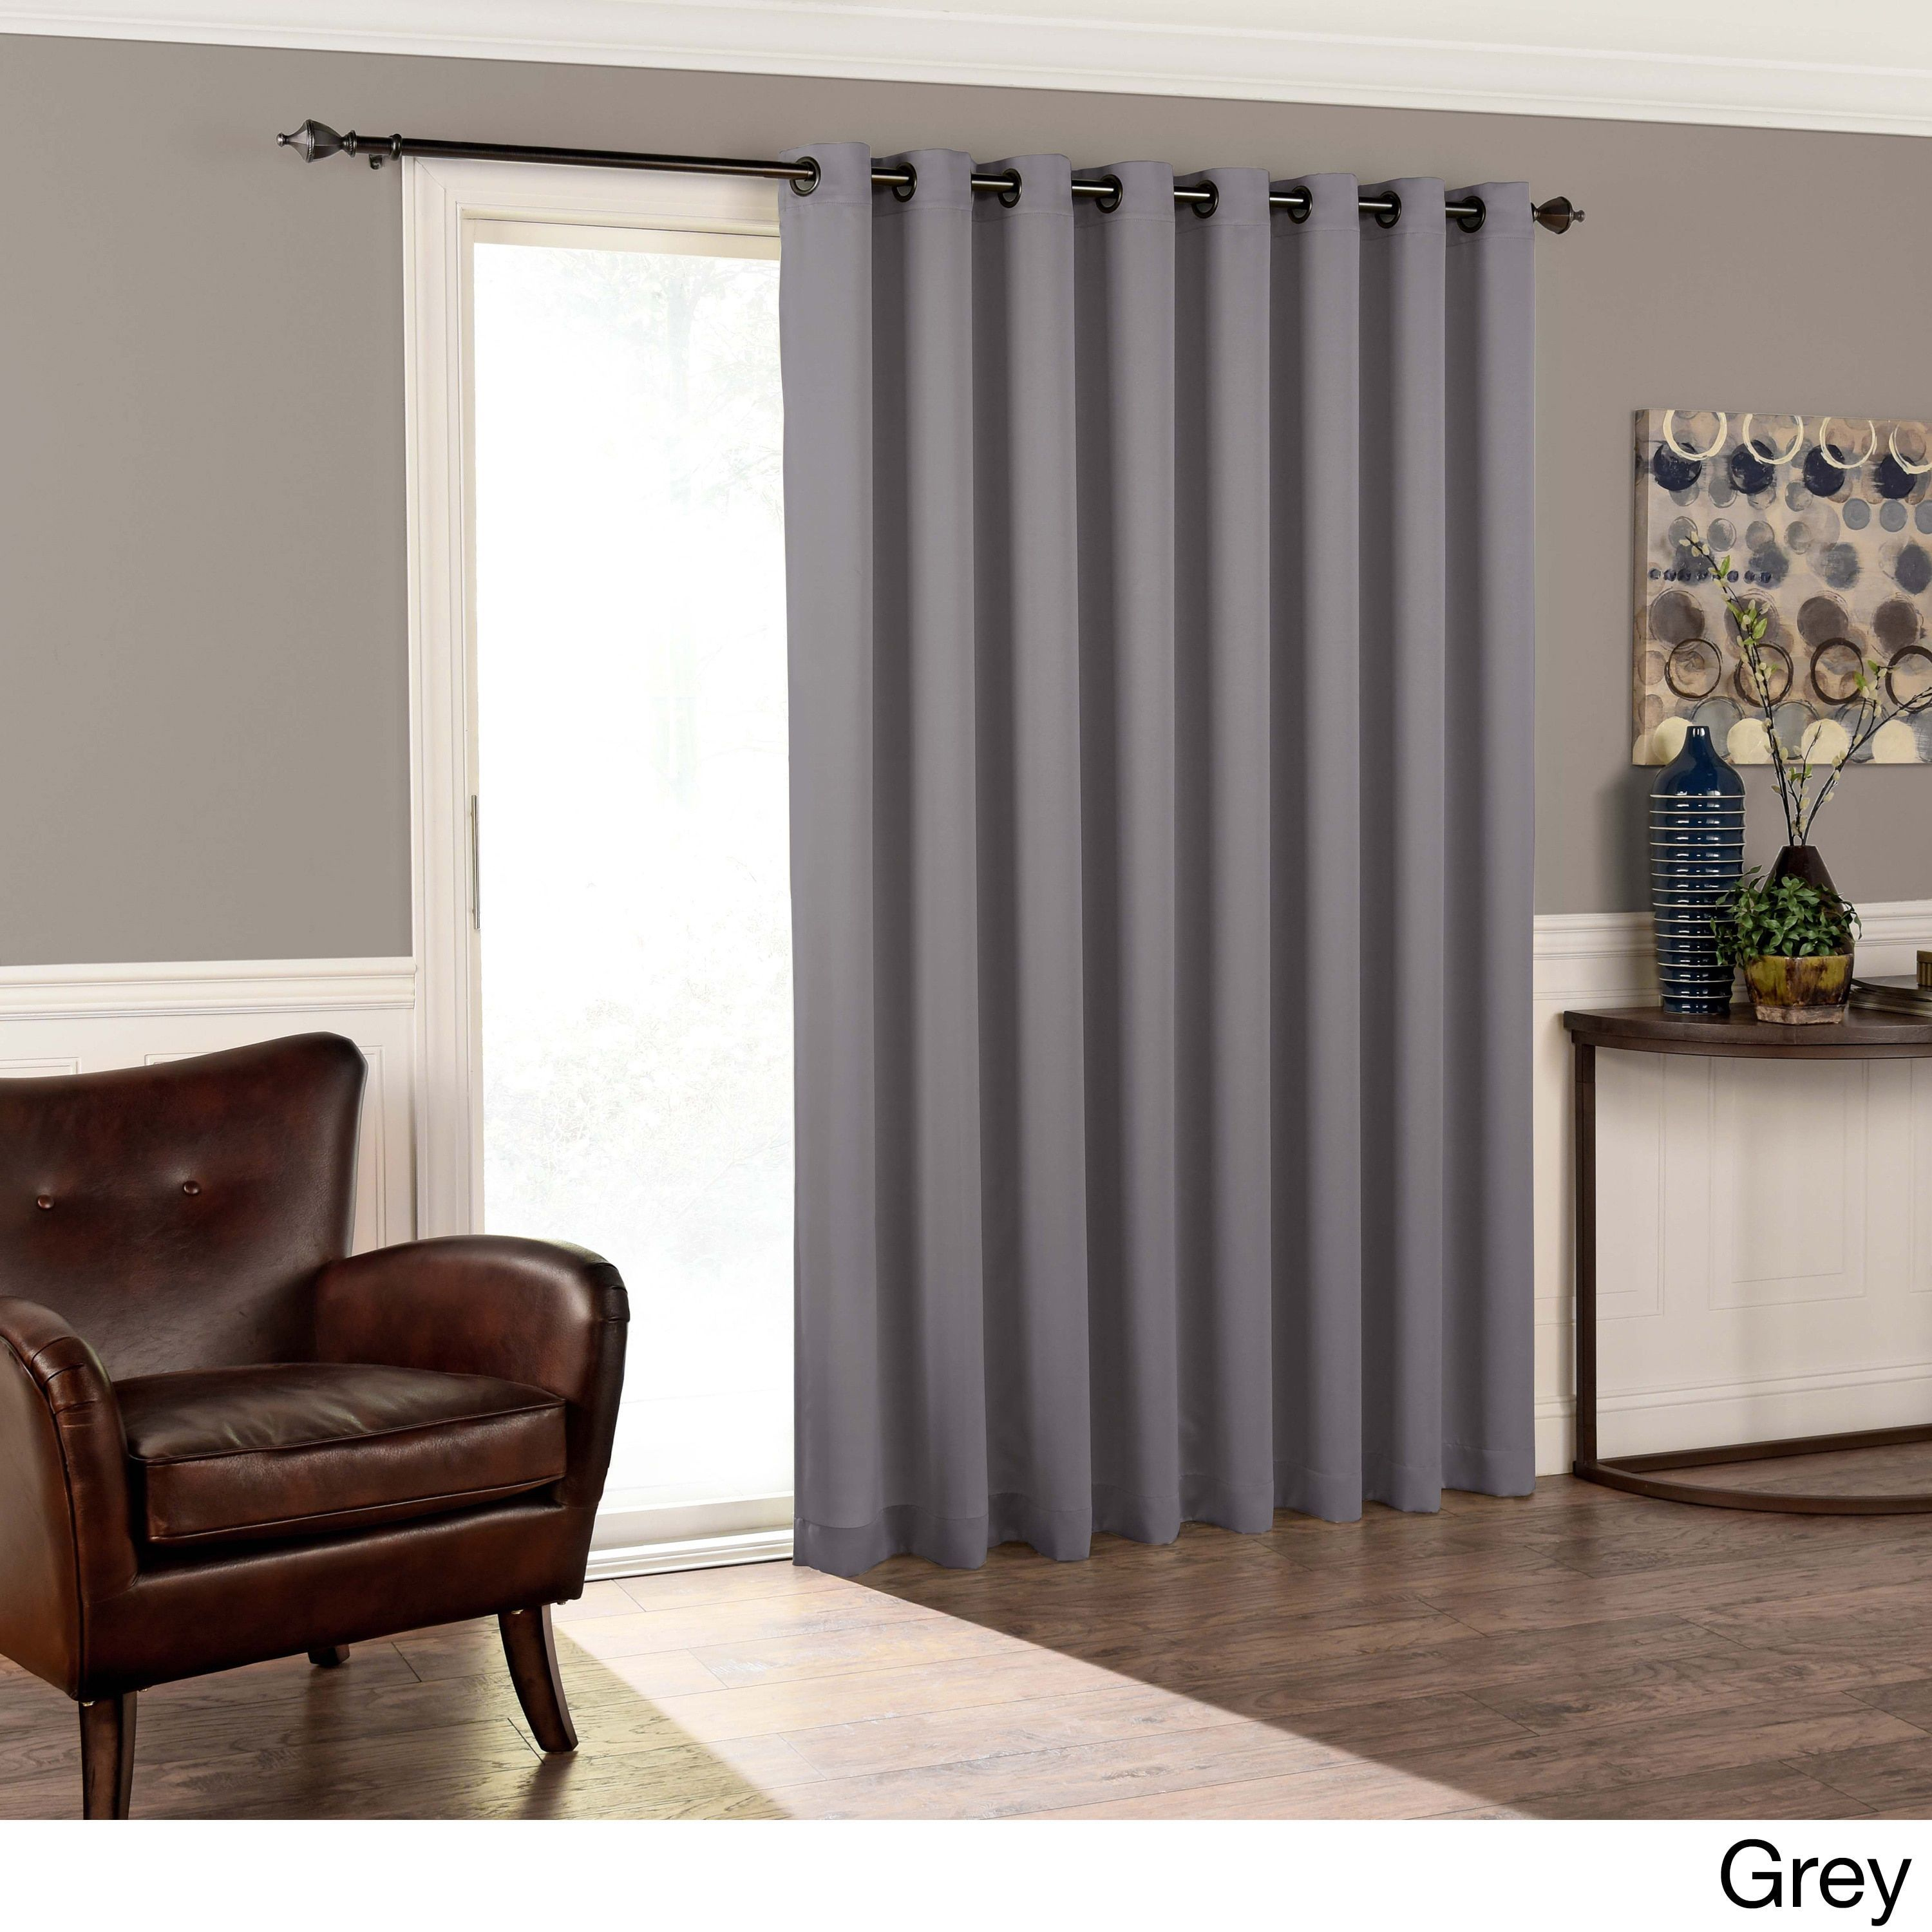 Eclipse tricia curtain panel products pinterest patio doors